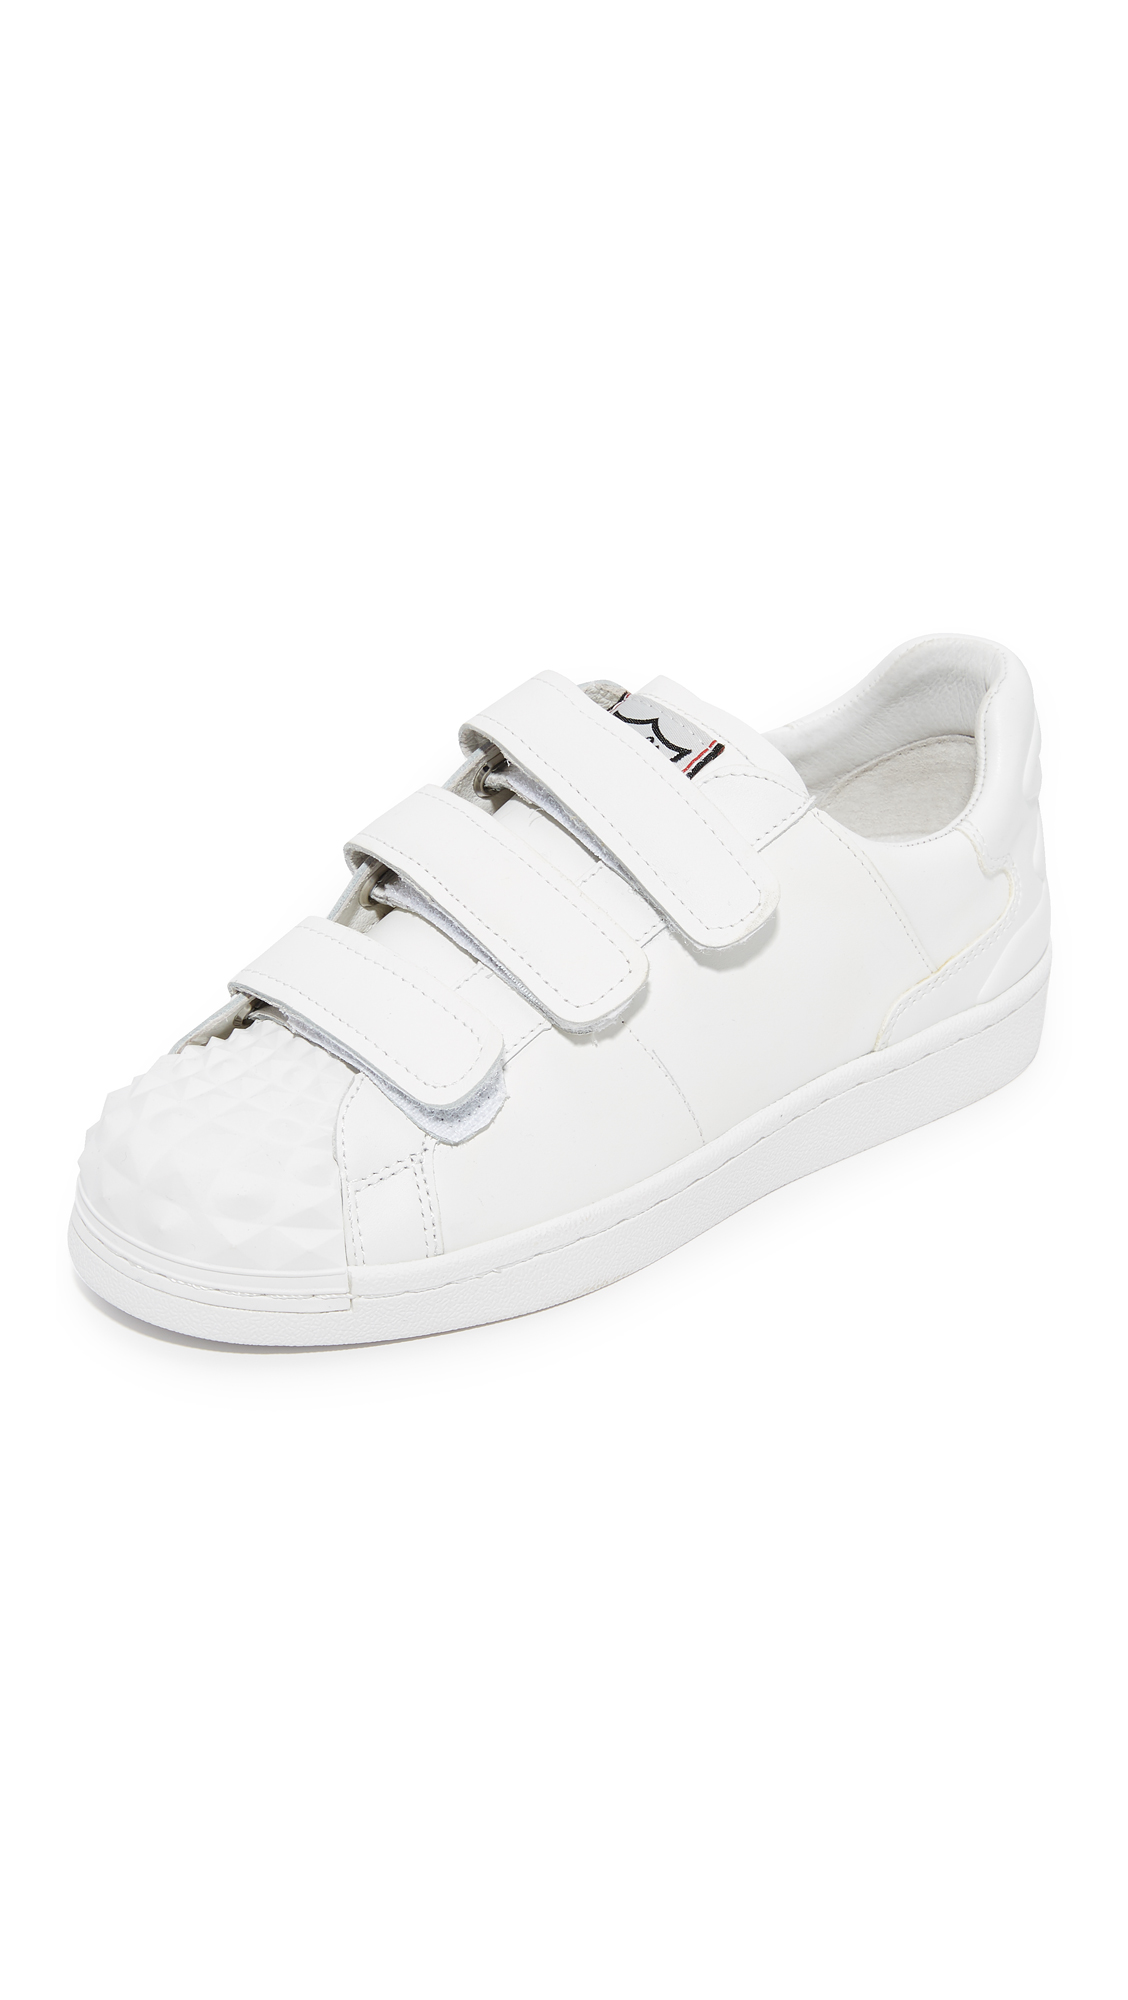 Ash Club Velcro Sneakers - White at Shopbop